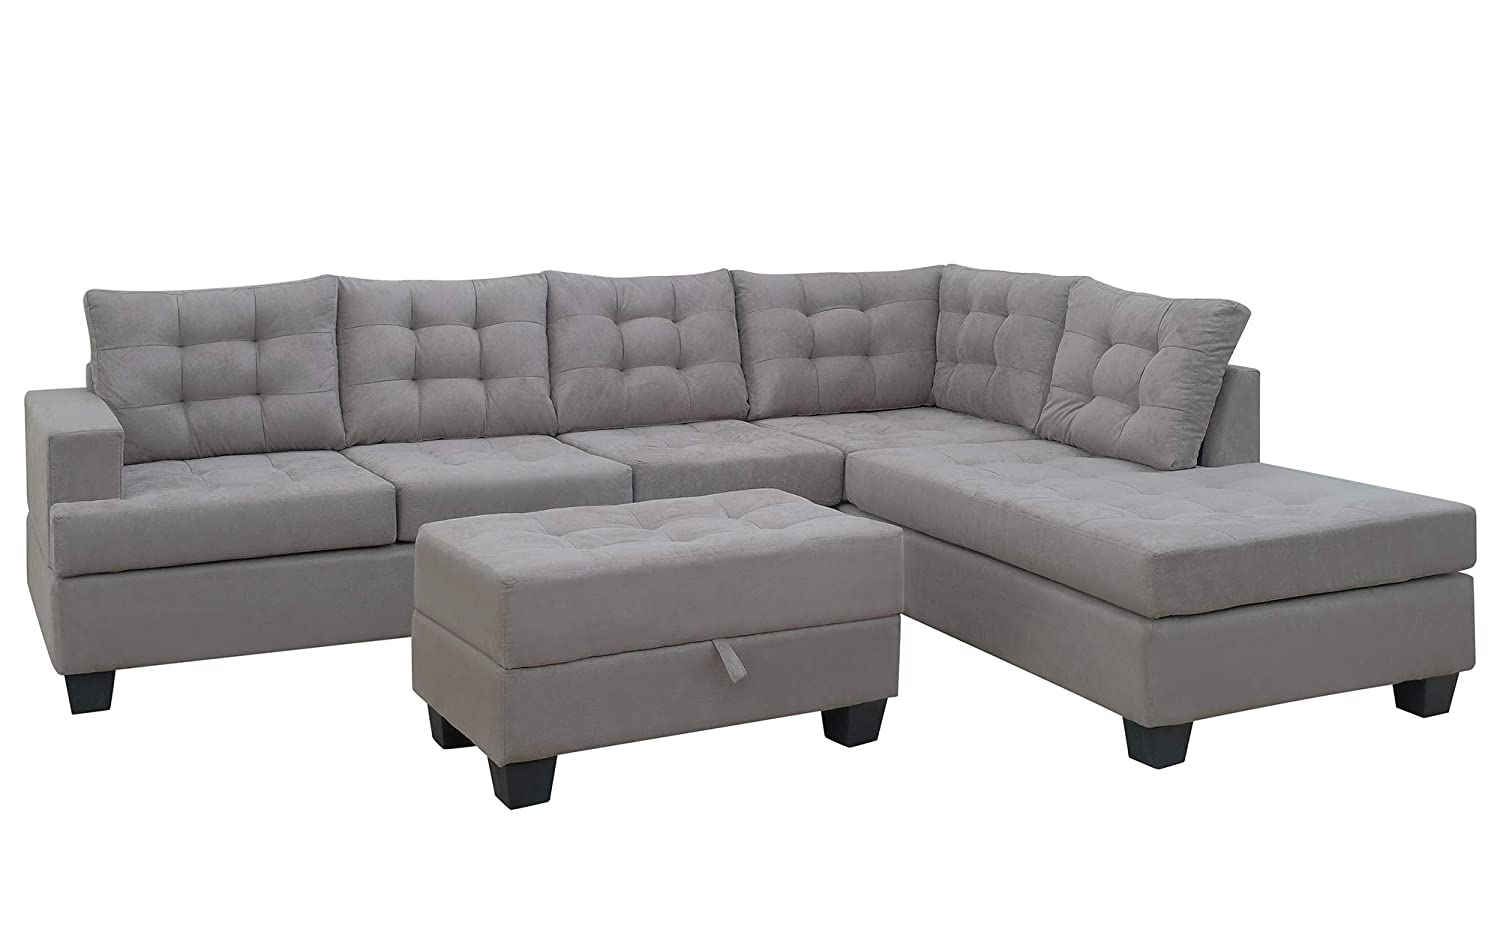 Amazon.com: Sofa 3-Piece Sectional Sofa with Chaise Lounge and ...